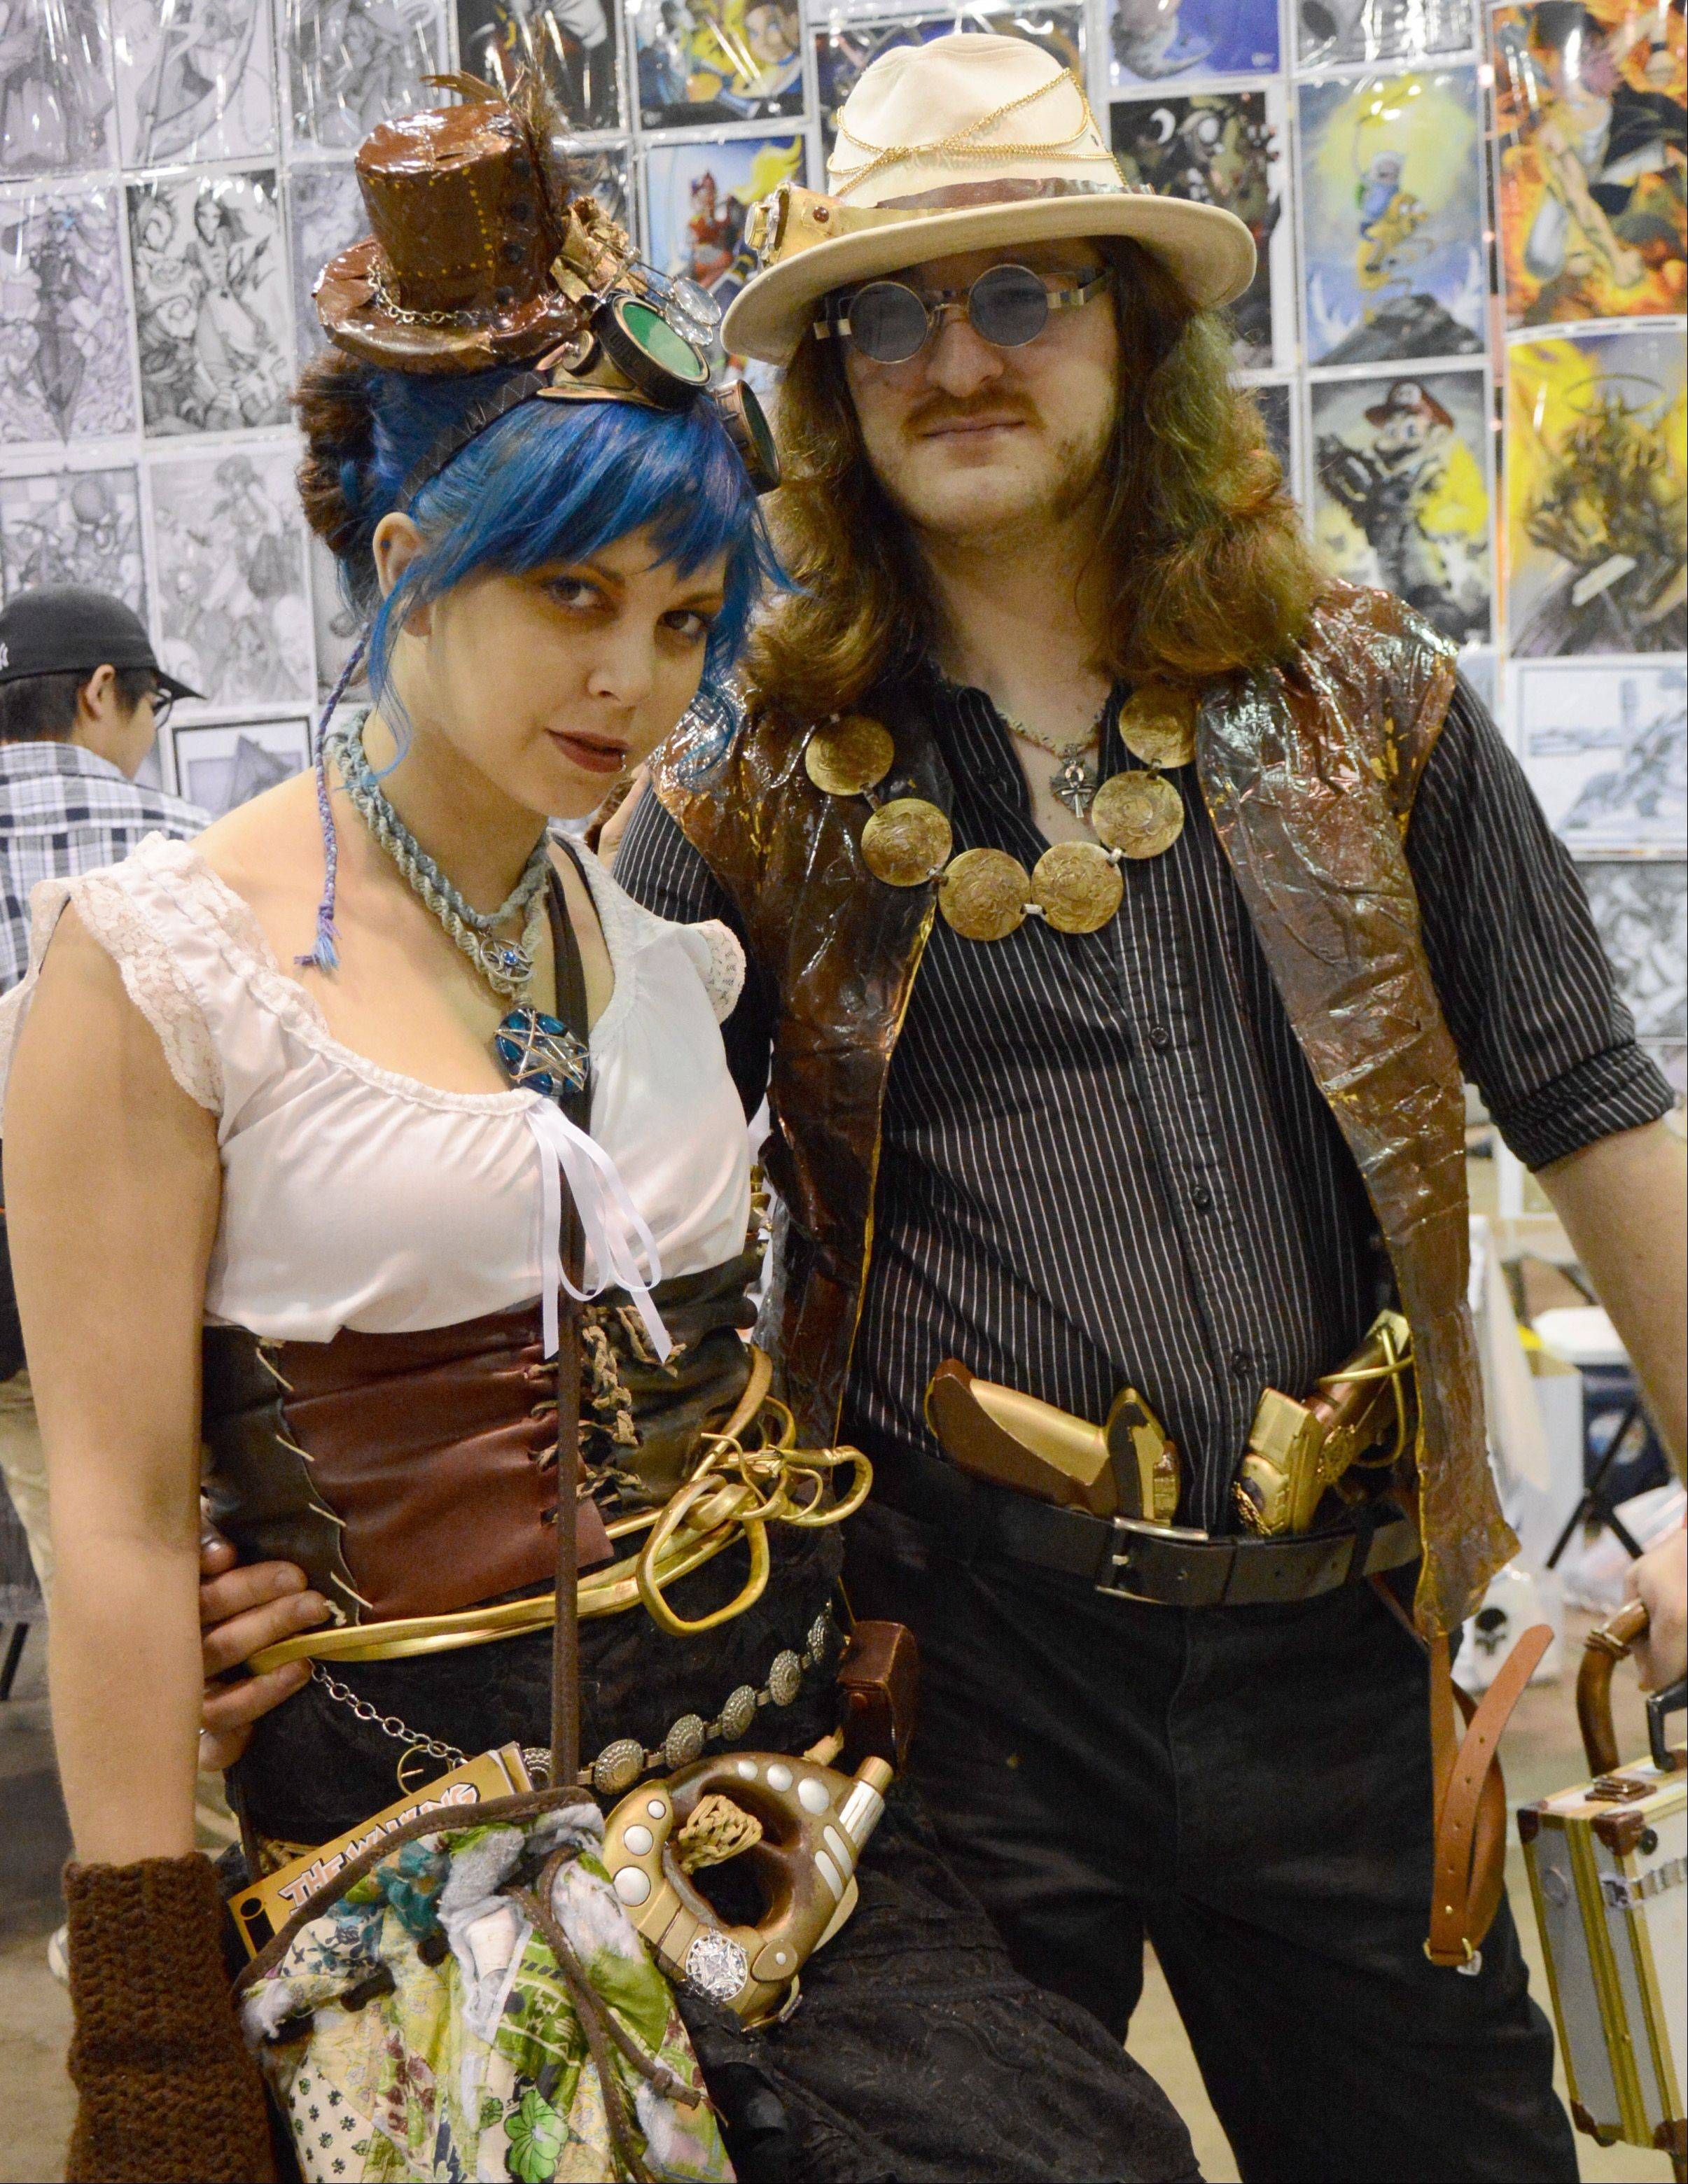 Cat Lasee, left, and Nathan Willard, both of Lodi, Wis., dress in Steampunk attire during Wizard World Chicago Comic Con in Rosemont Sunday.